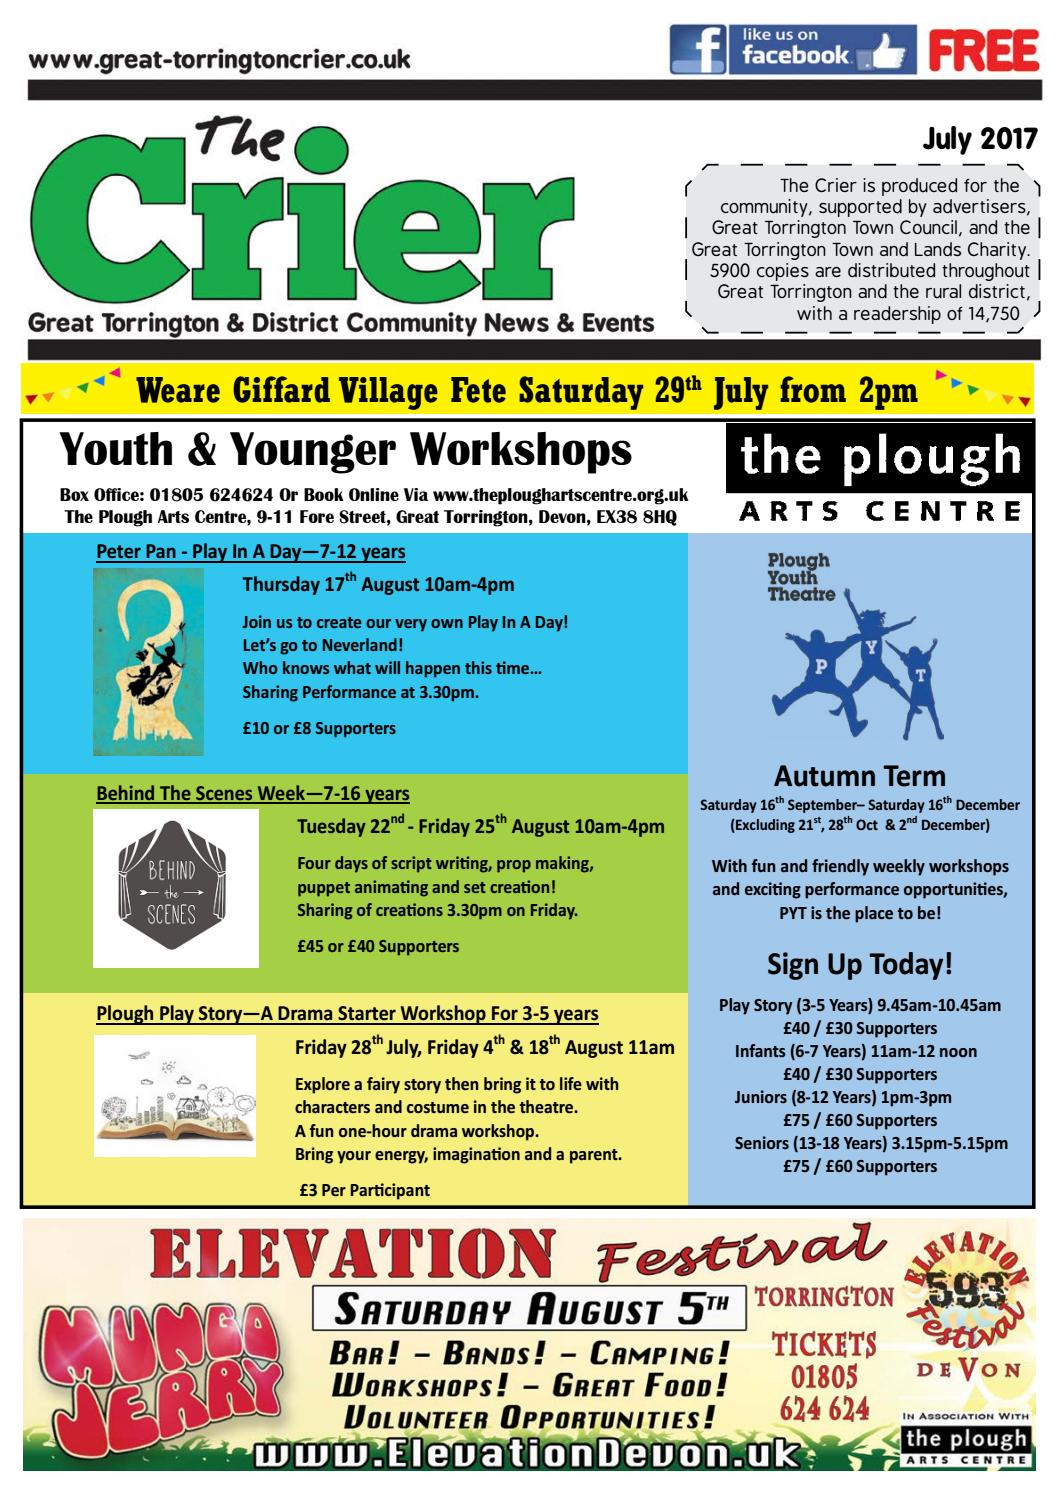 July Crier 2017 By The Torrington Issuu Displaying 20gt Images For Solution Science Example